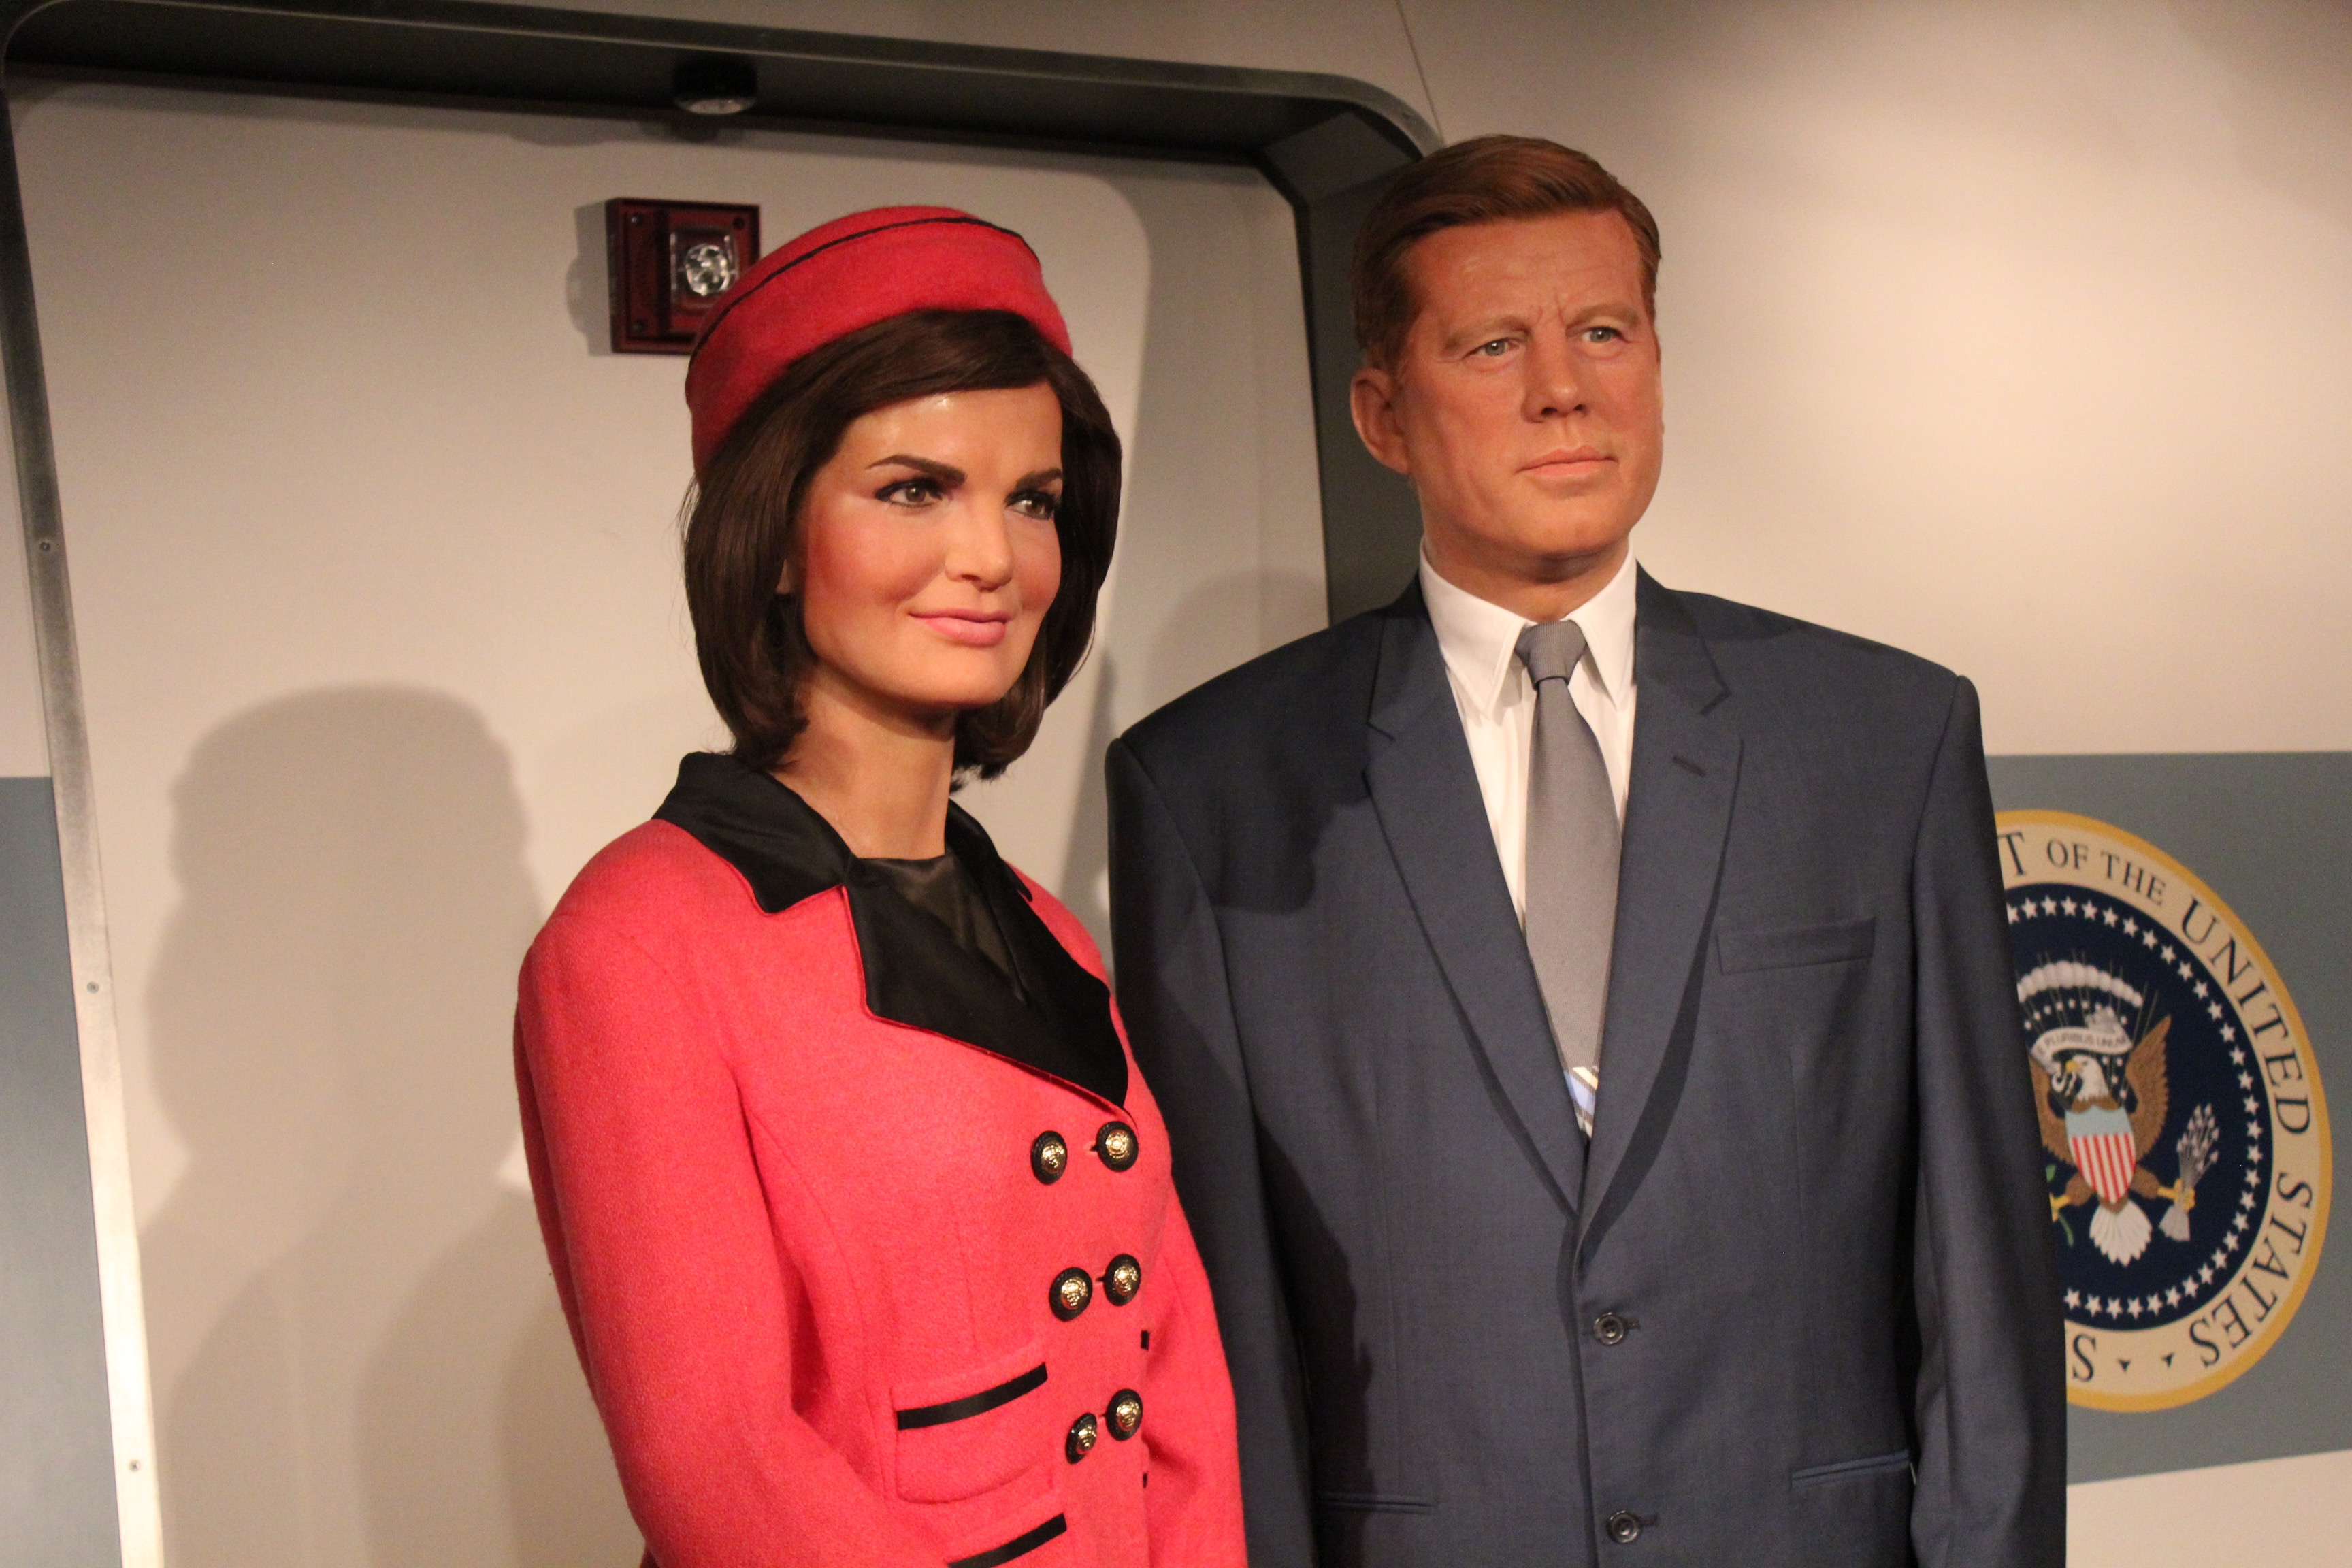 Madame Tussauds in London. Marie Tussaud was born in in Strasbourg, France. Her mother worked as a housekeeper for Dr. Philippe Curtius in Bern, Switzerland, who was a .